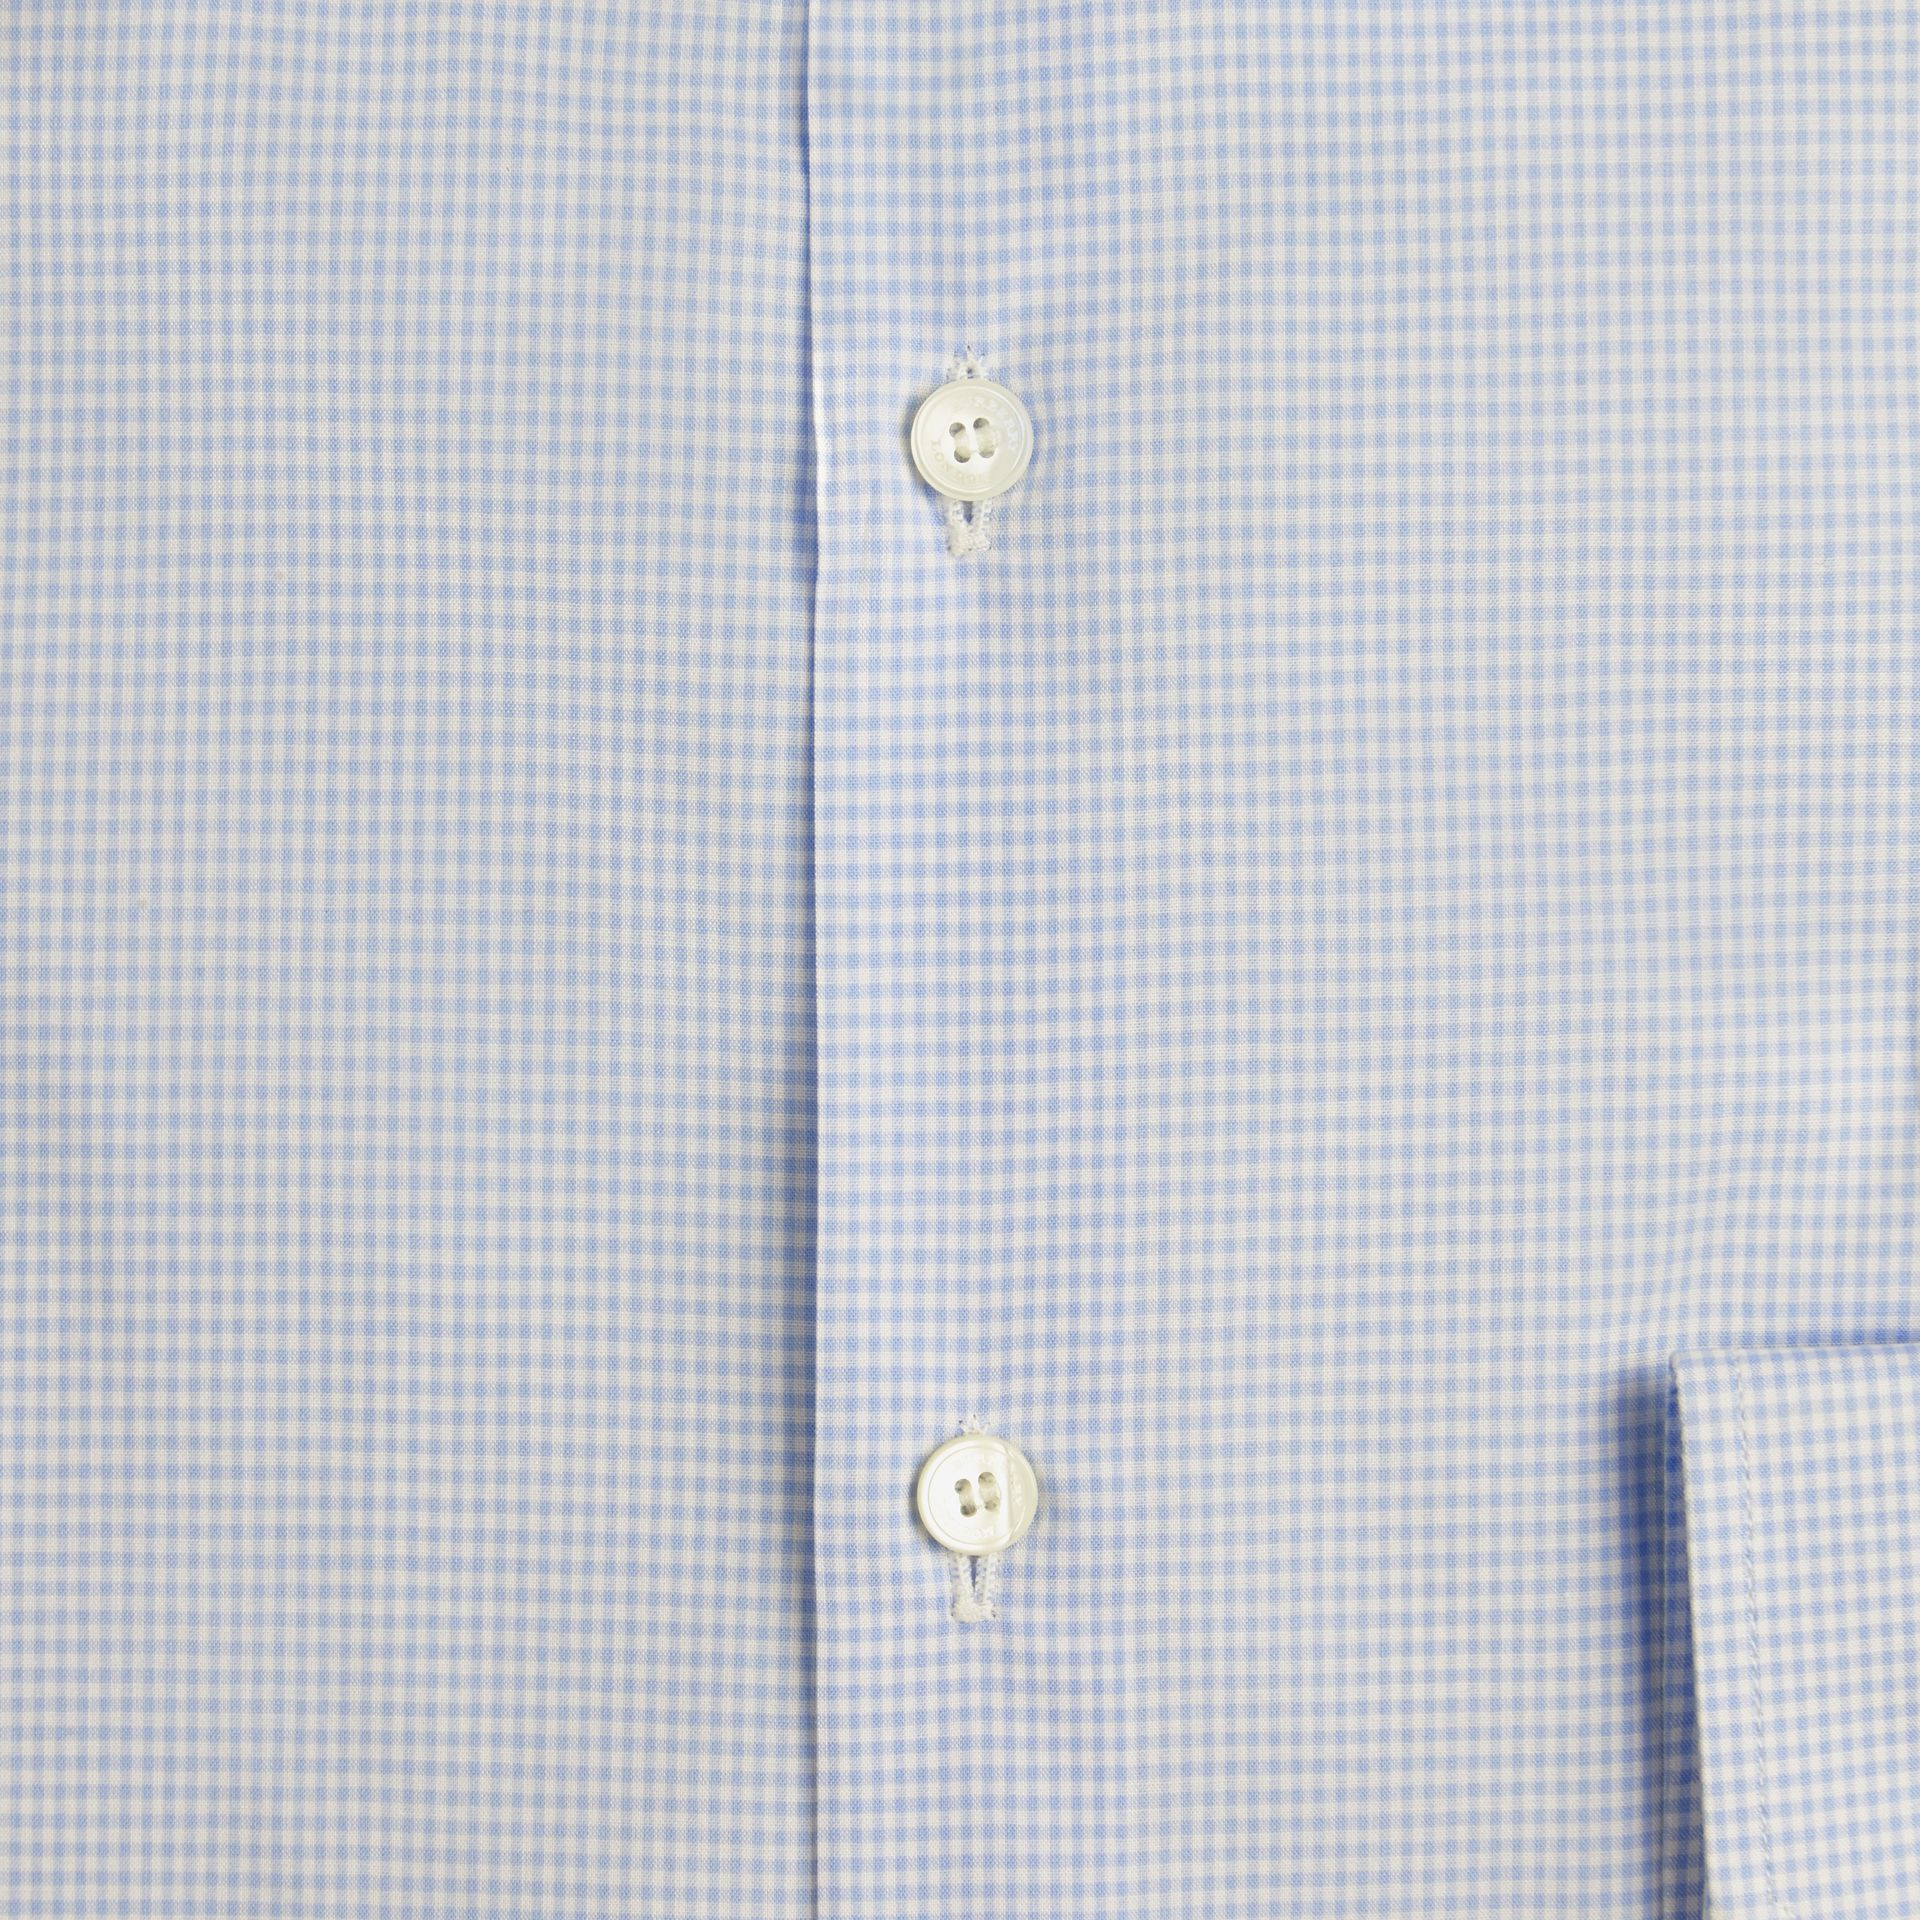 Slim Fit Gingham Cotton Poplin Shirt City Blue - gallery image 2